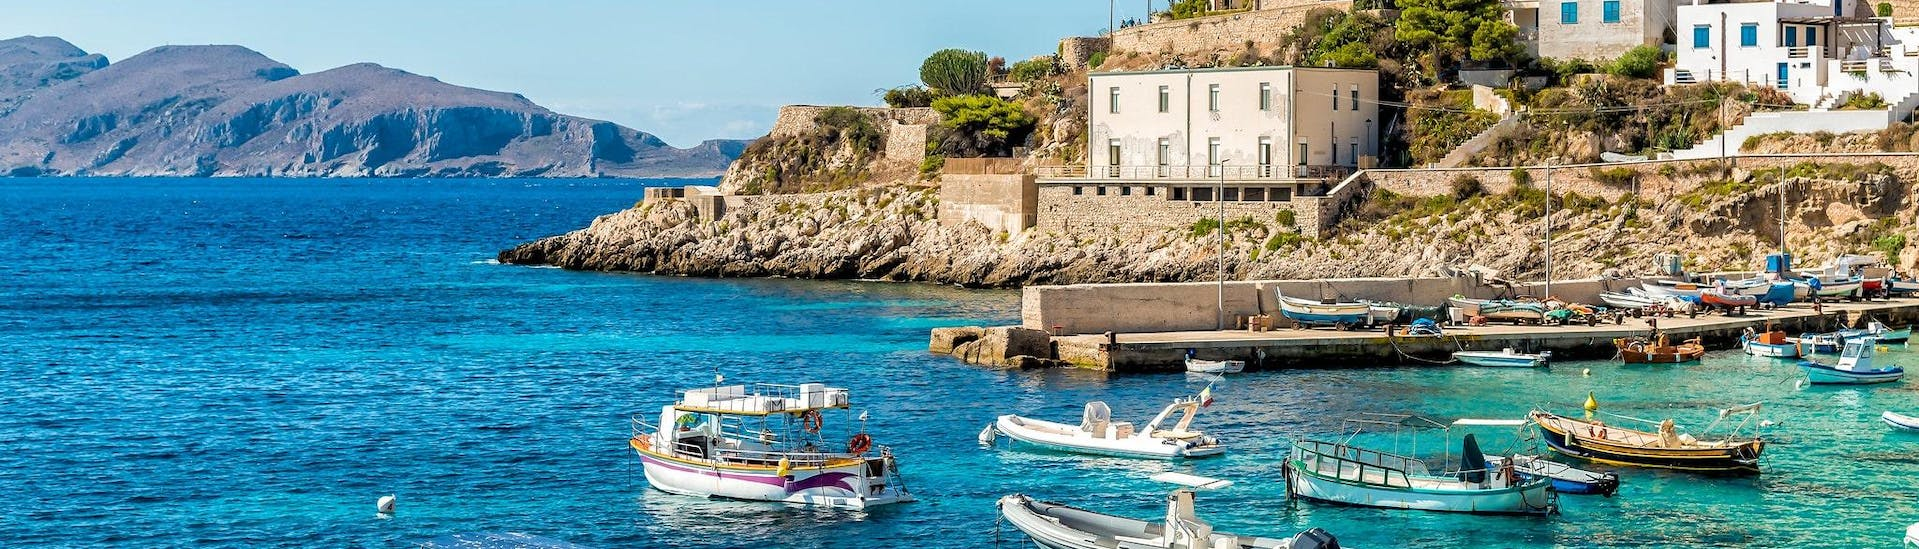 View of Levanzo Island, which is a popular destination for boat trips from Trapani in Sicily.